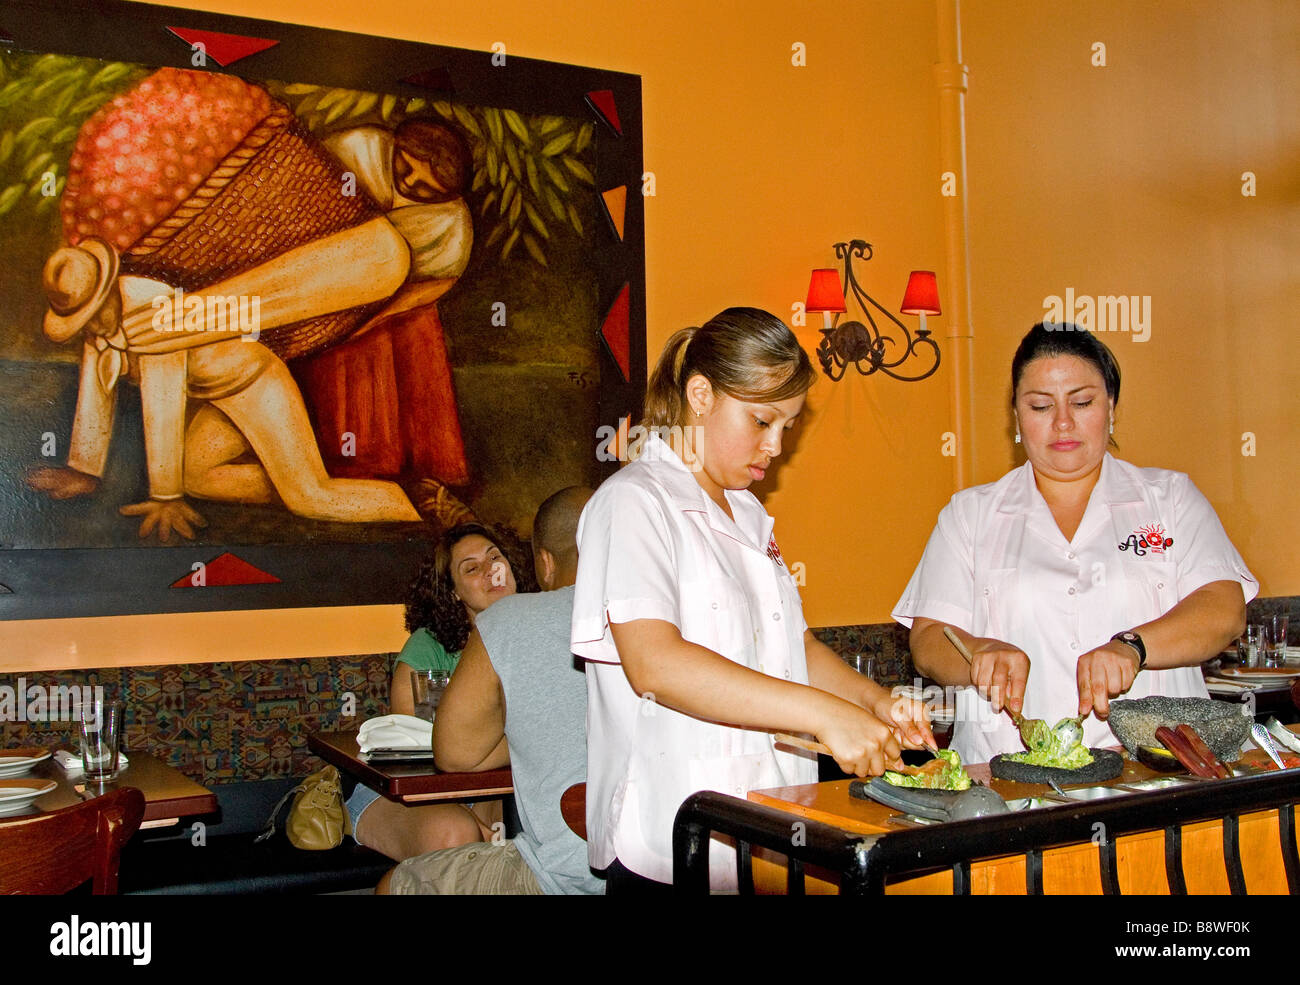 Mexican Restaurant Workers Stock Photo 22688195 Alamy